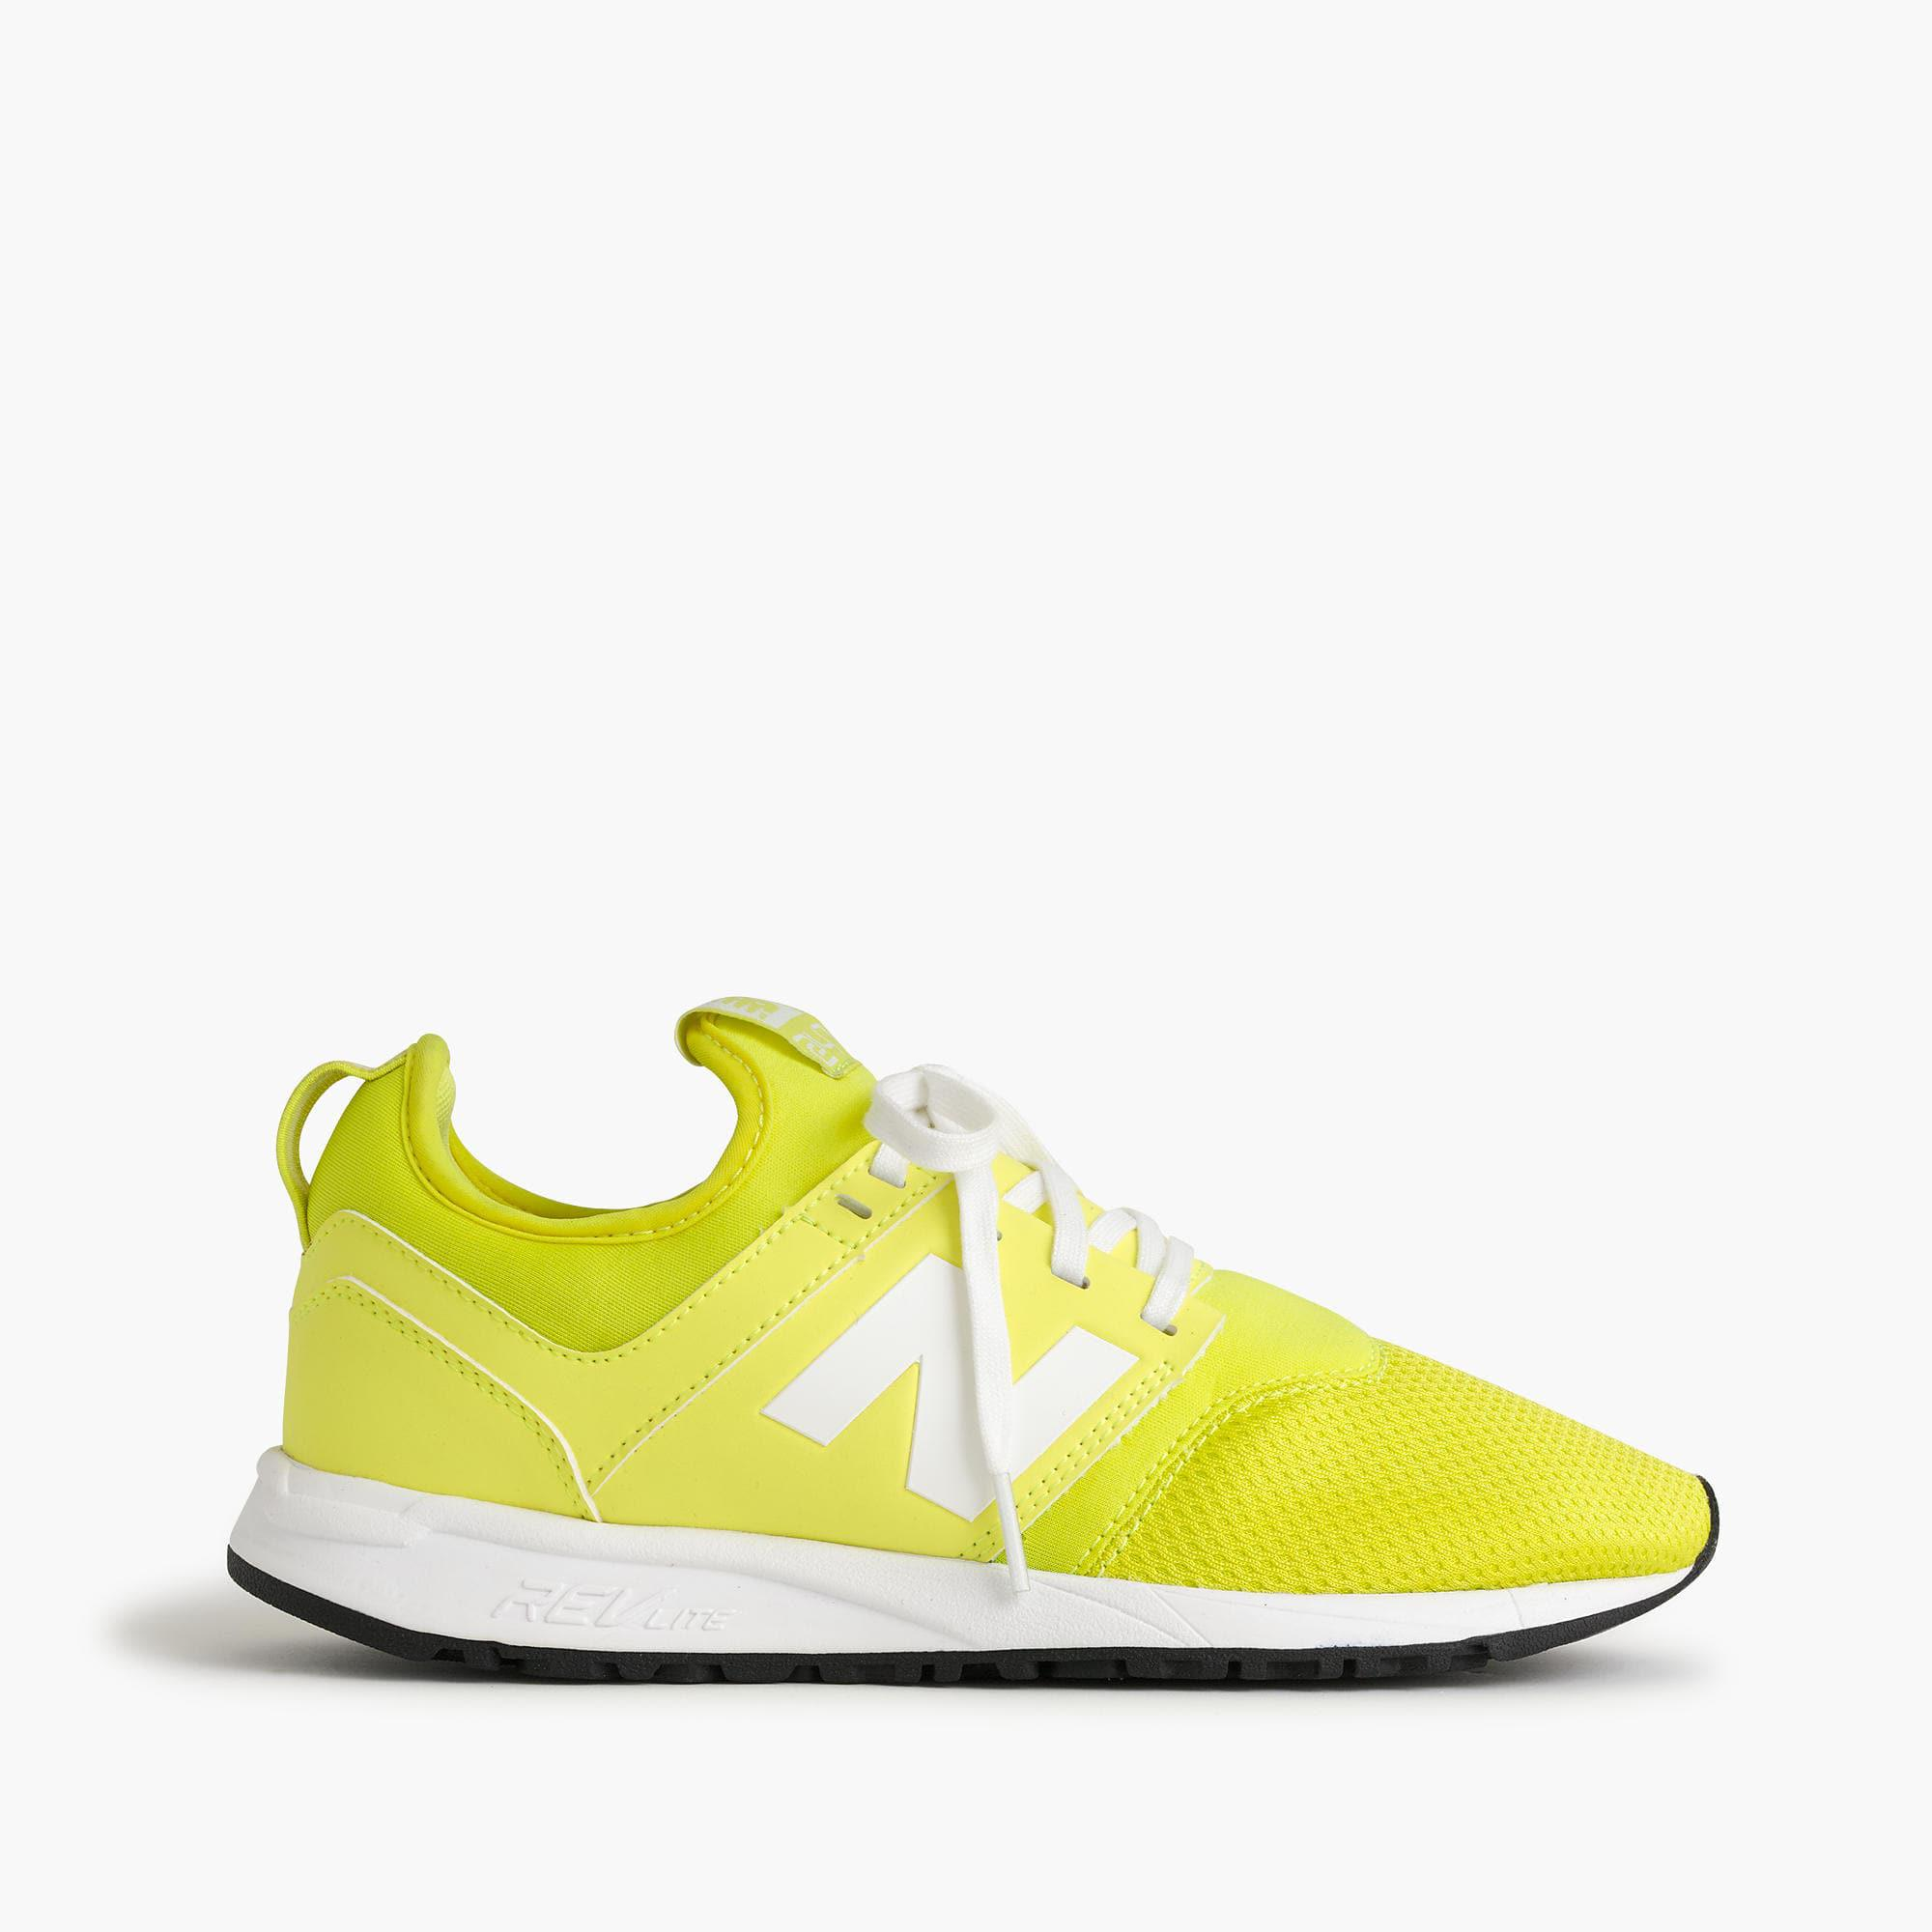 New Balance 247 Sneakers in Yellow